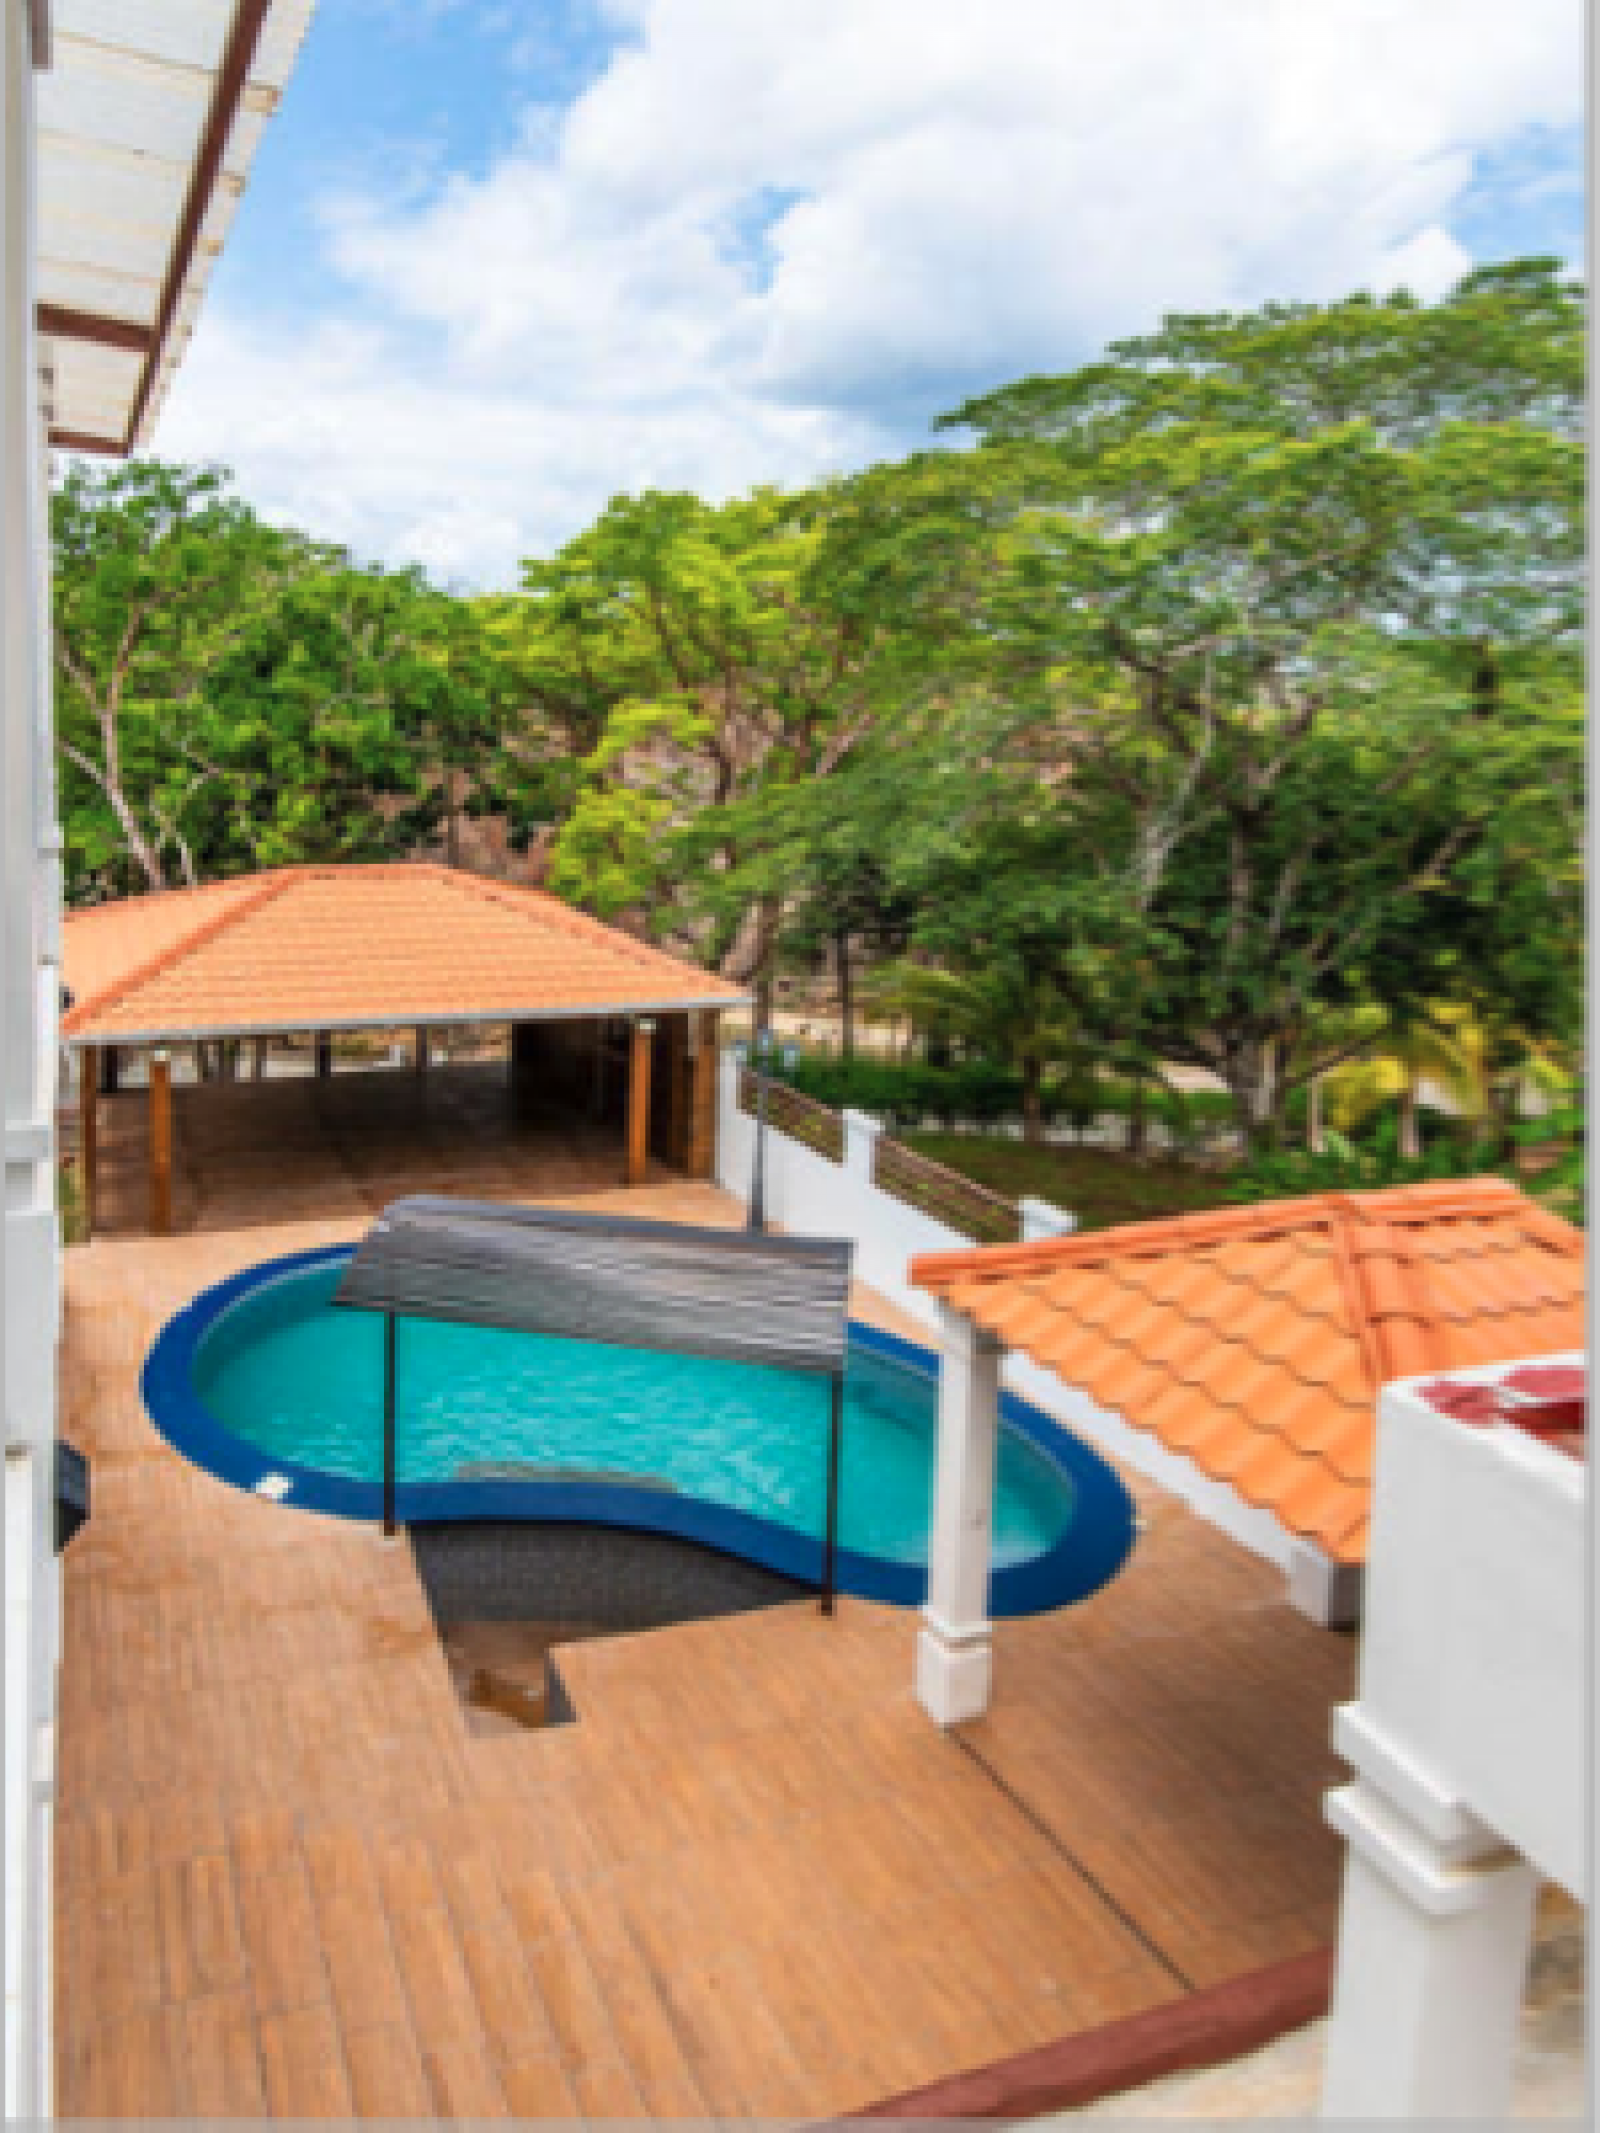 View of pool area from the upstairs veranda